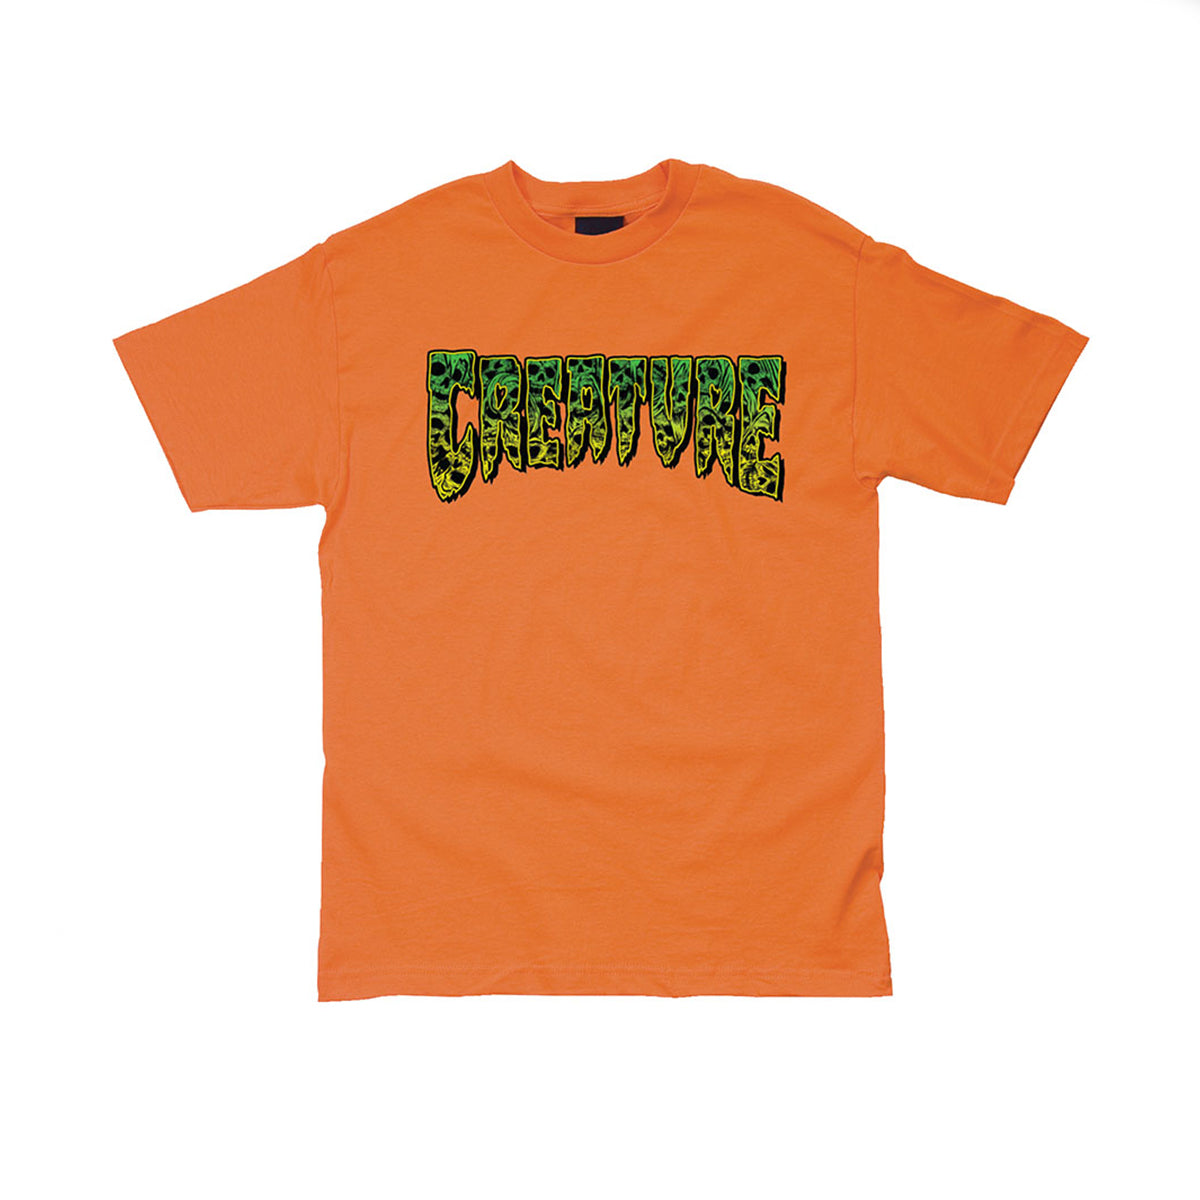 Creature Catacomb T-Shirt | Underground Skate Shop